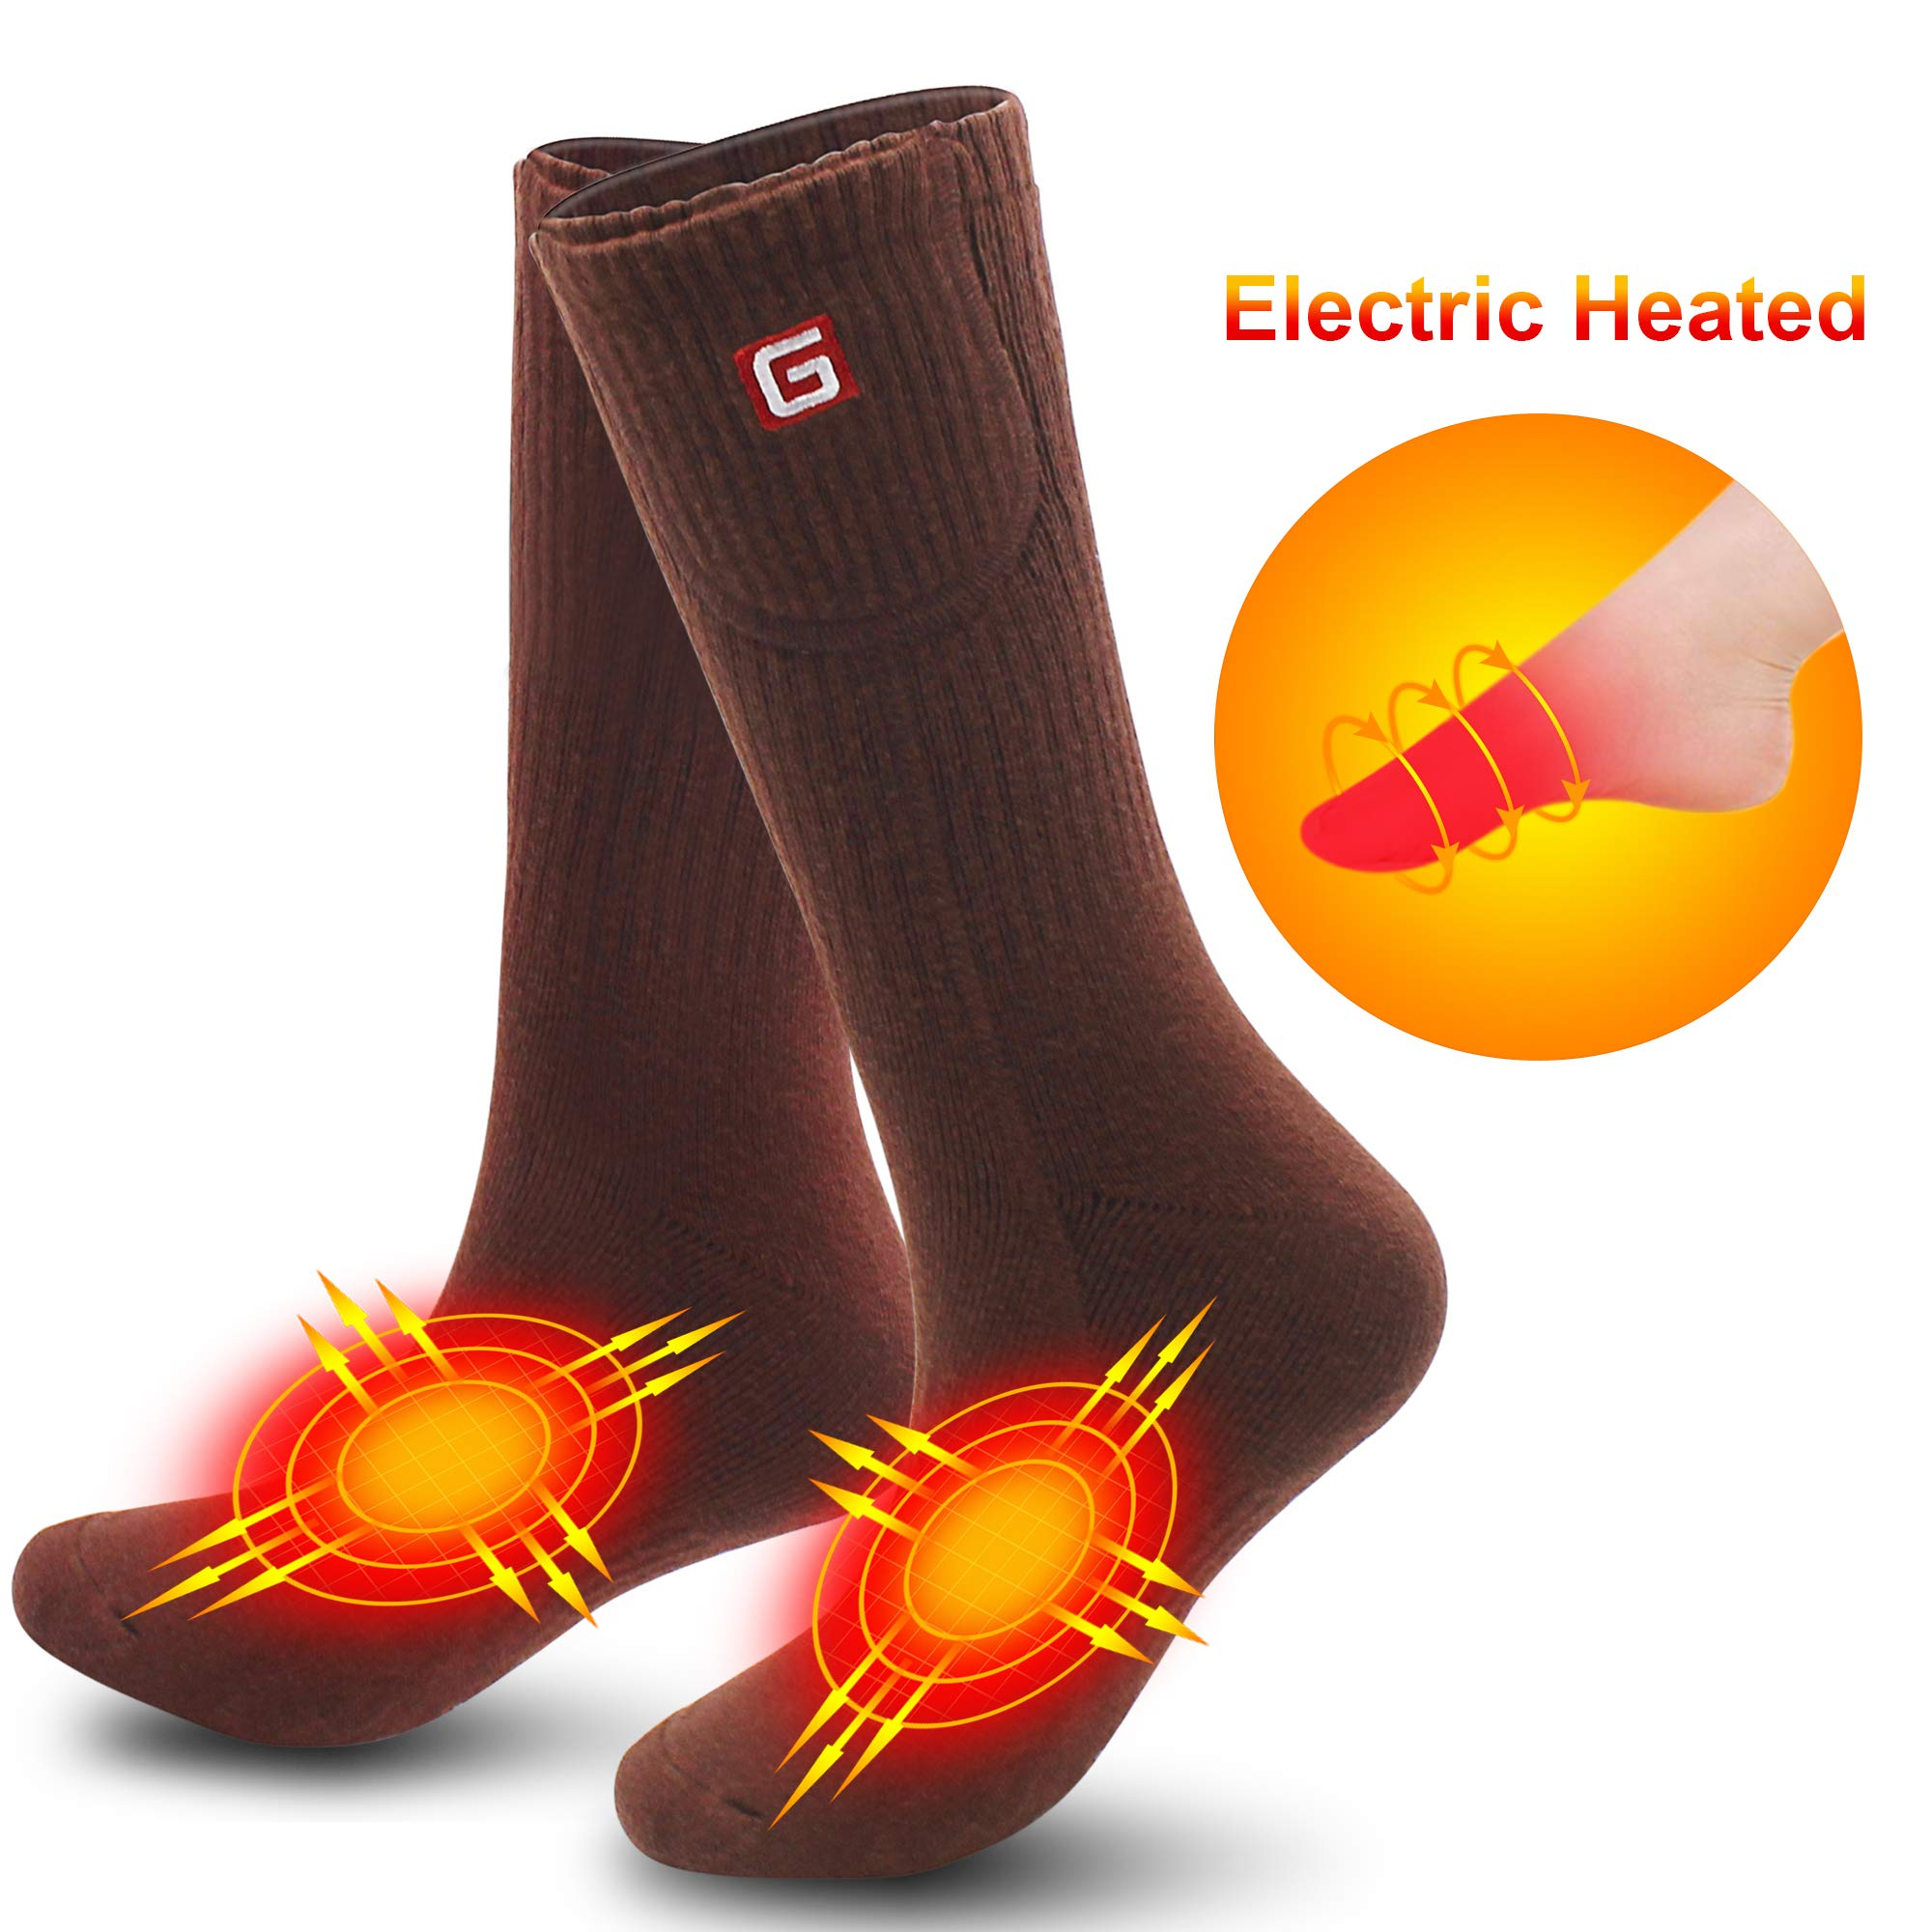 Rechargeable Battery Heated Socks Thick Knitting 3.7V Electric Heated Socks,Winter Unisex Socks Ideal Gift for Men & Women Perfect for Fishing/Hiking/Sleeping Free Size (Brown-L) by MMlove